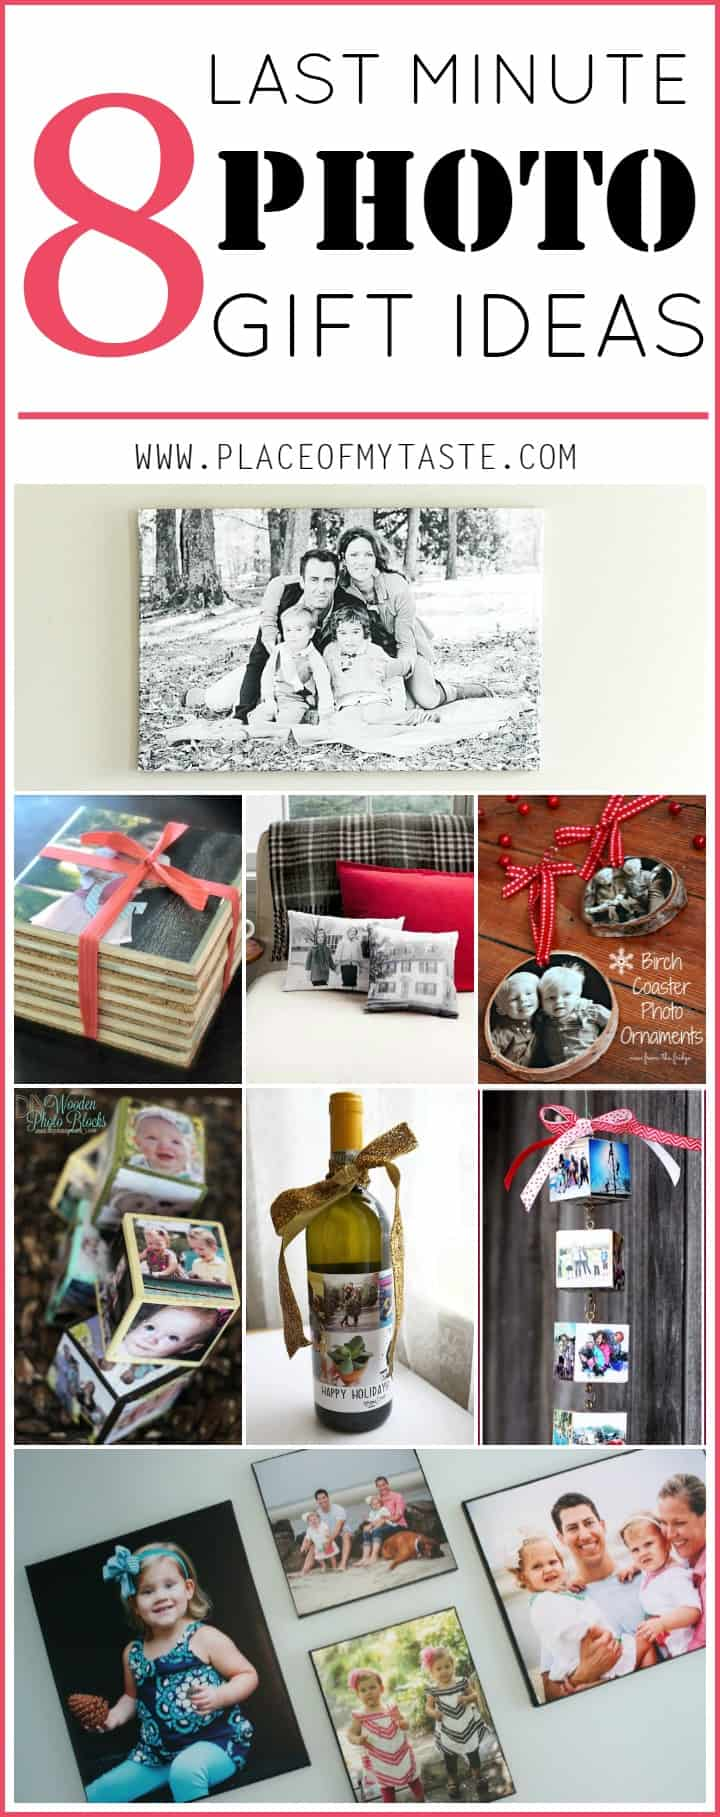 8 LAST MINUTE PHOTO GIFT IDEAS- Placeofmytaste